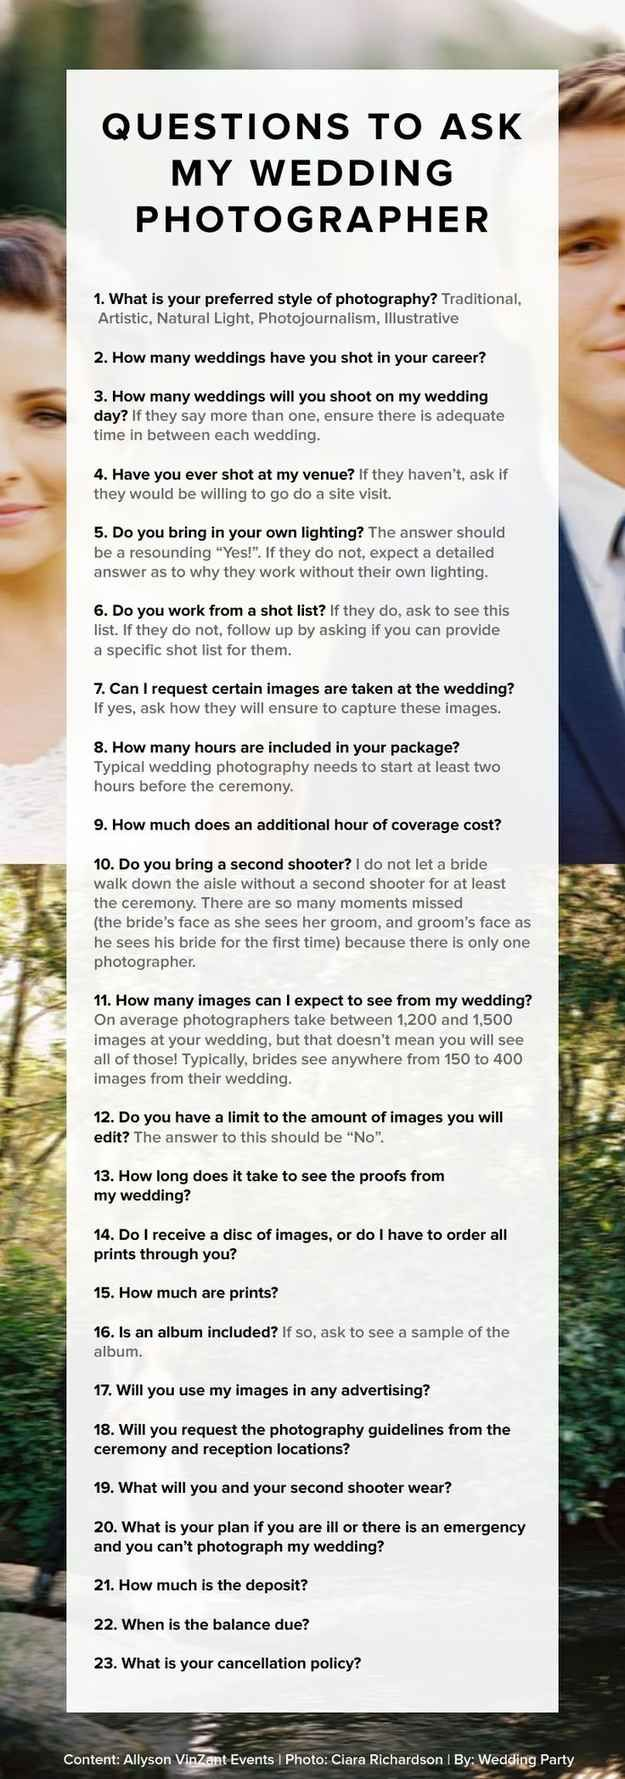 These Diagrams Are Everything You Need To Plan Your Wedding. Questions to ask a Wedding photographer.